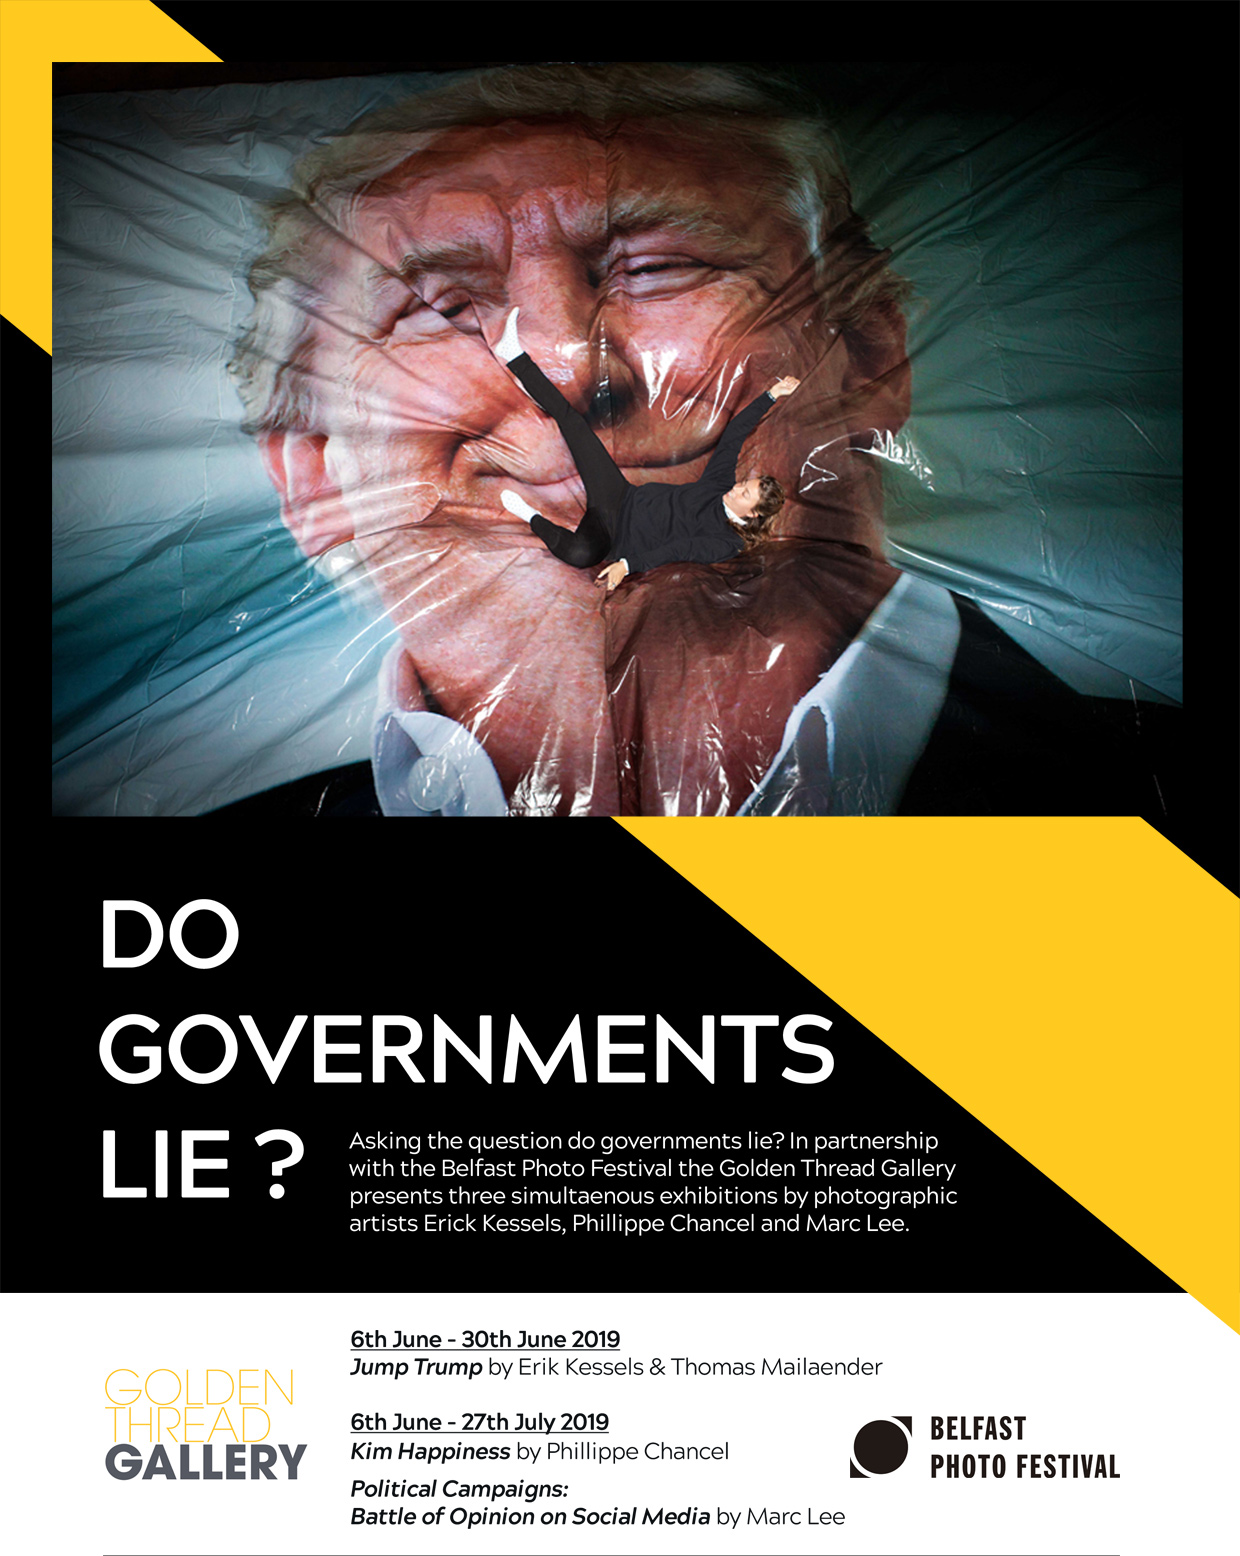 Do Governments Lie?